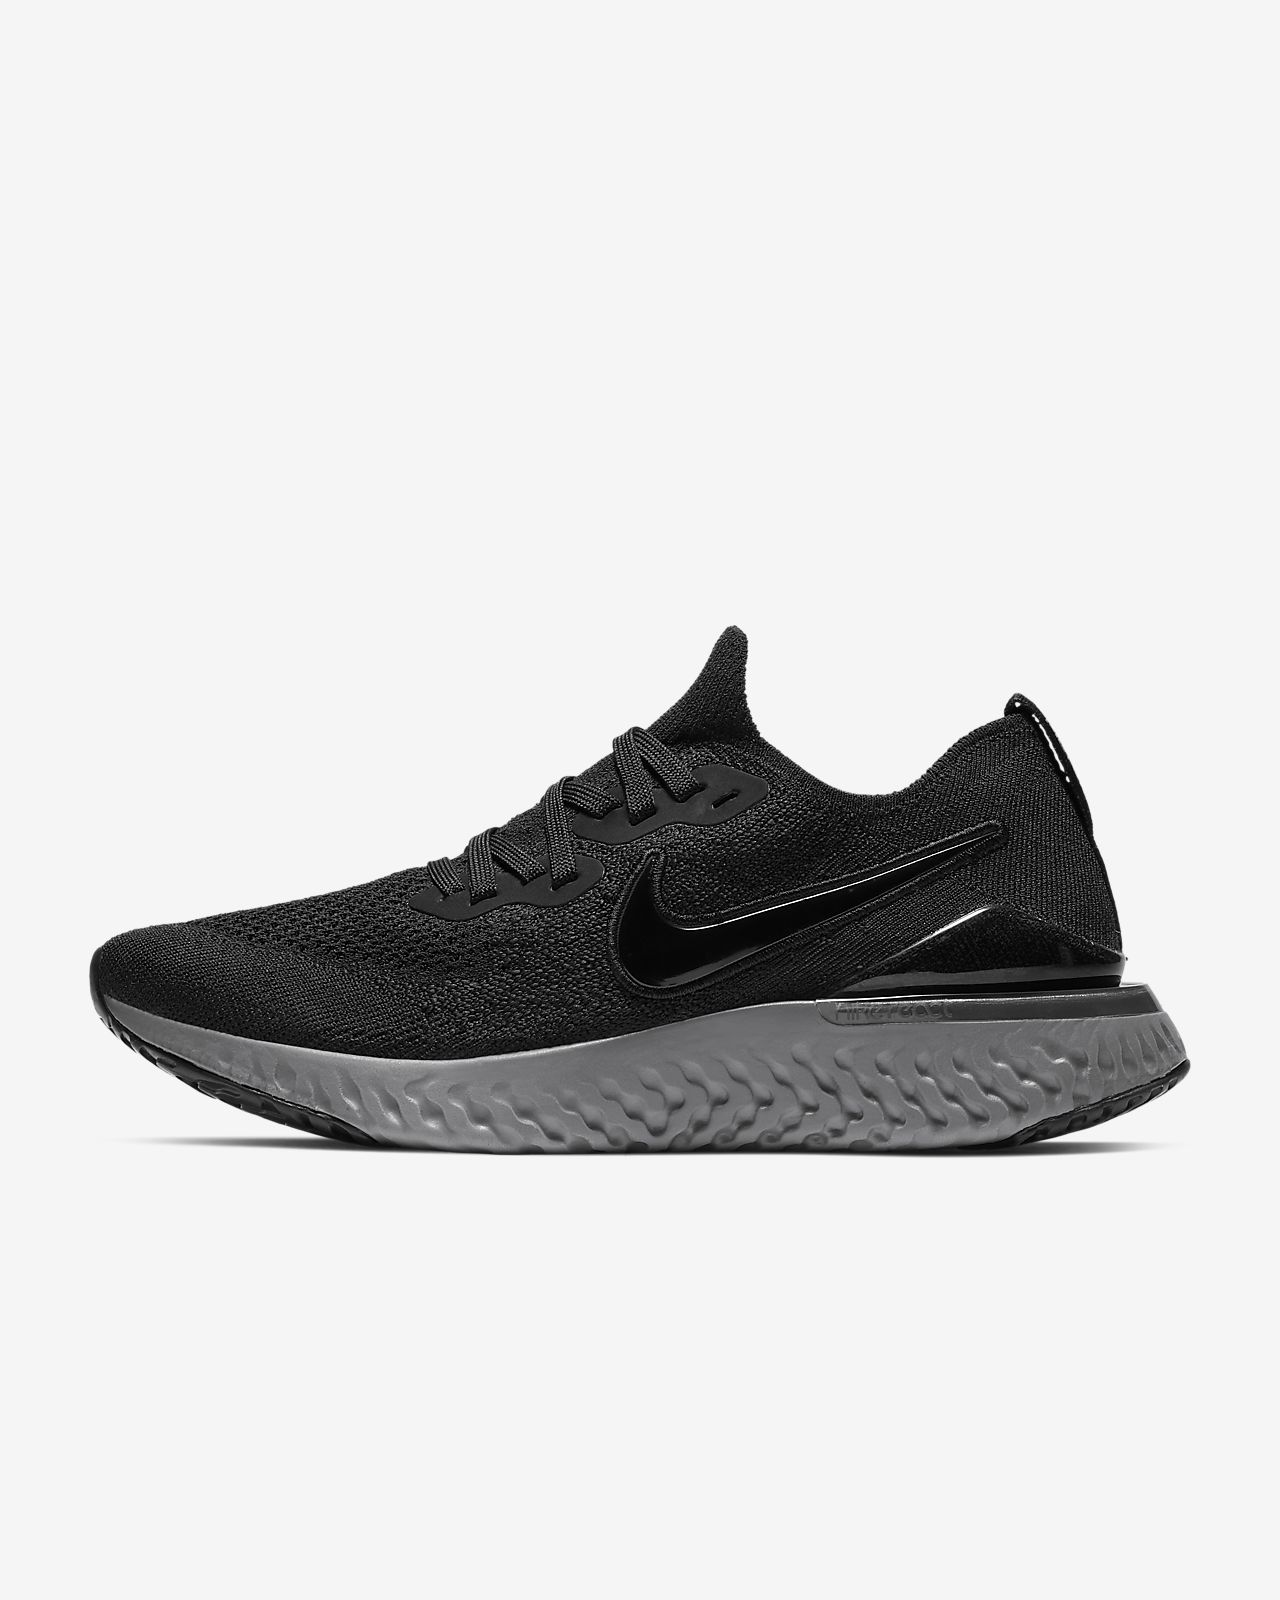 size 40 ed953 83917 Women s Running Shoe. Nike Epic React Flyknit 2